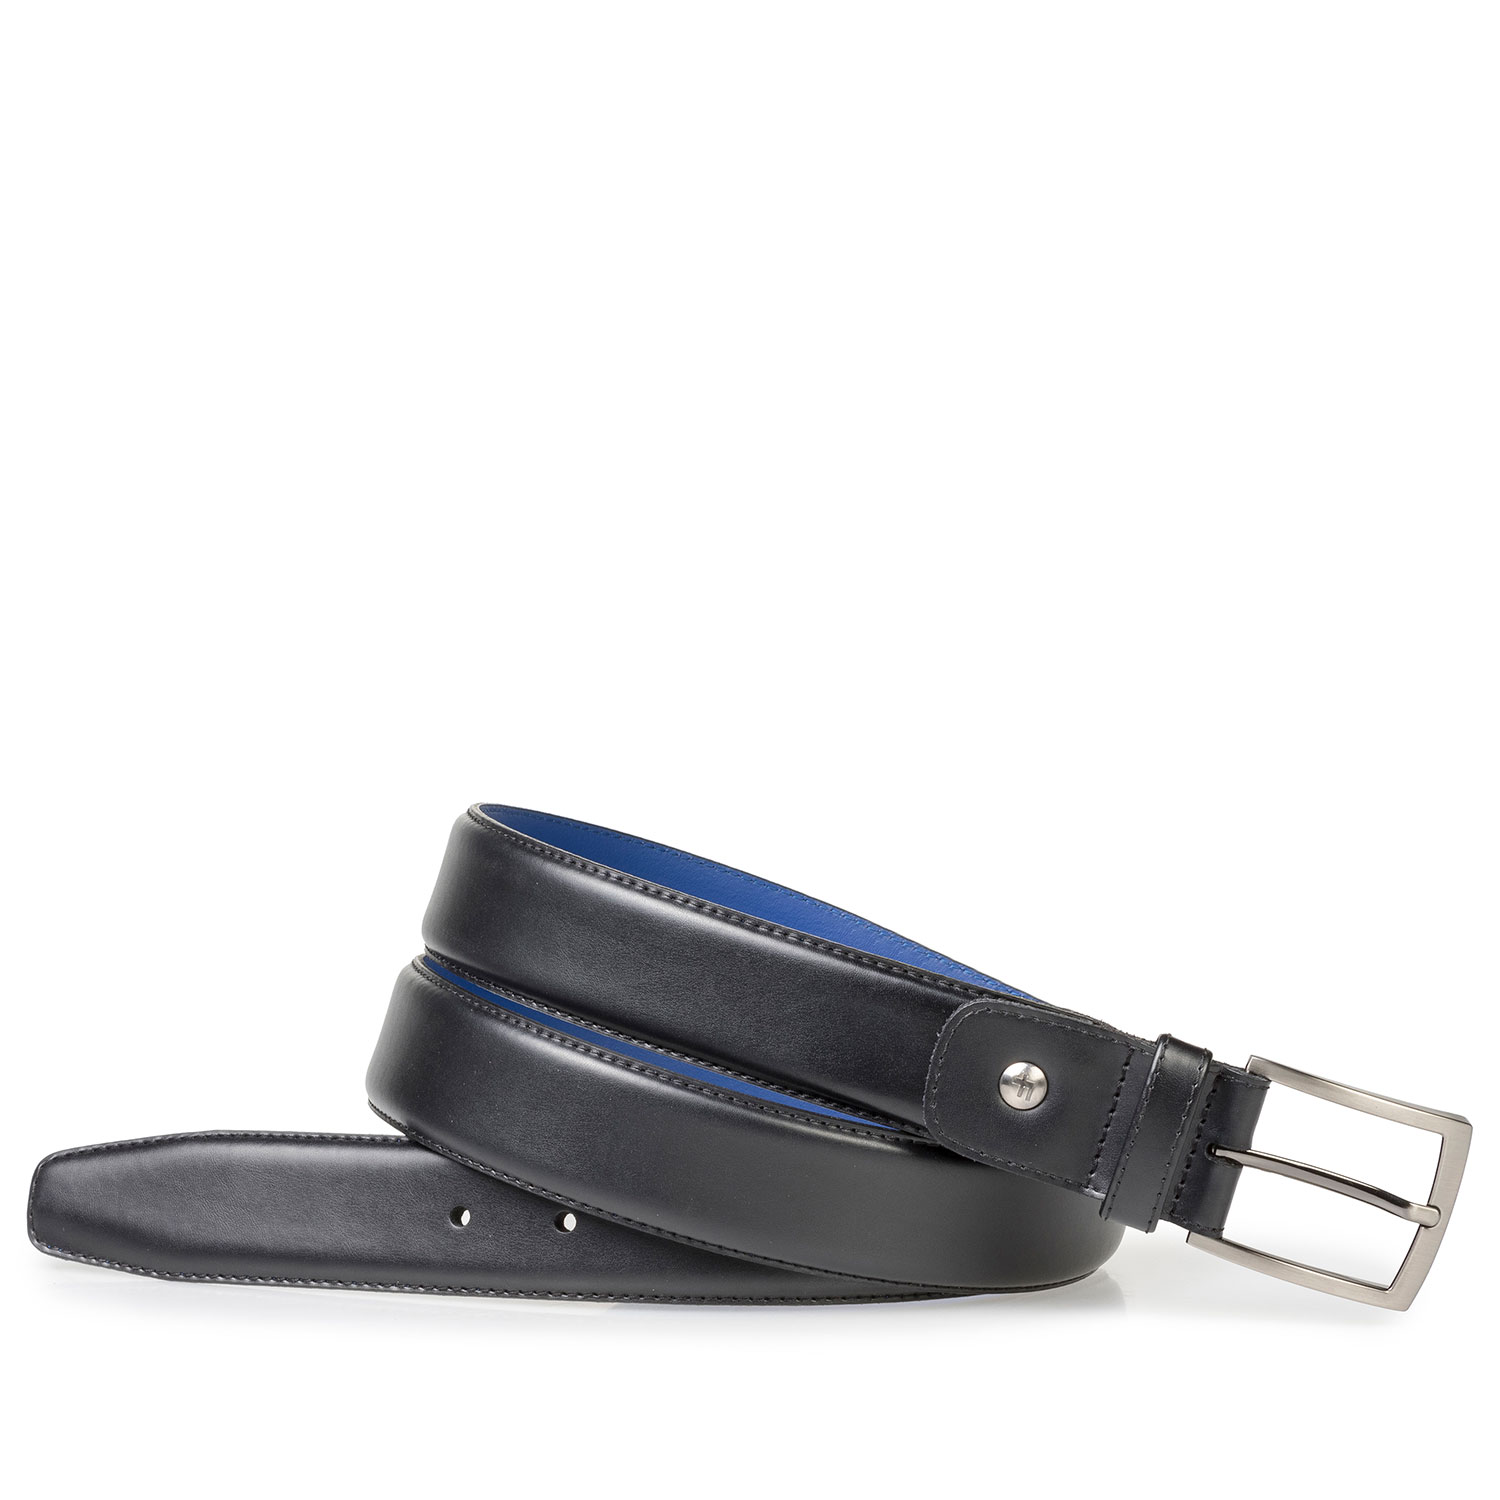 75144/02 - Black leather belt